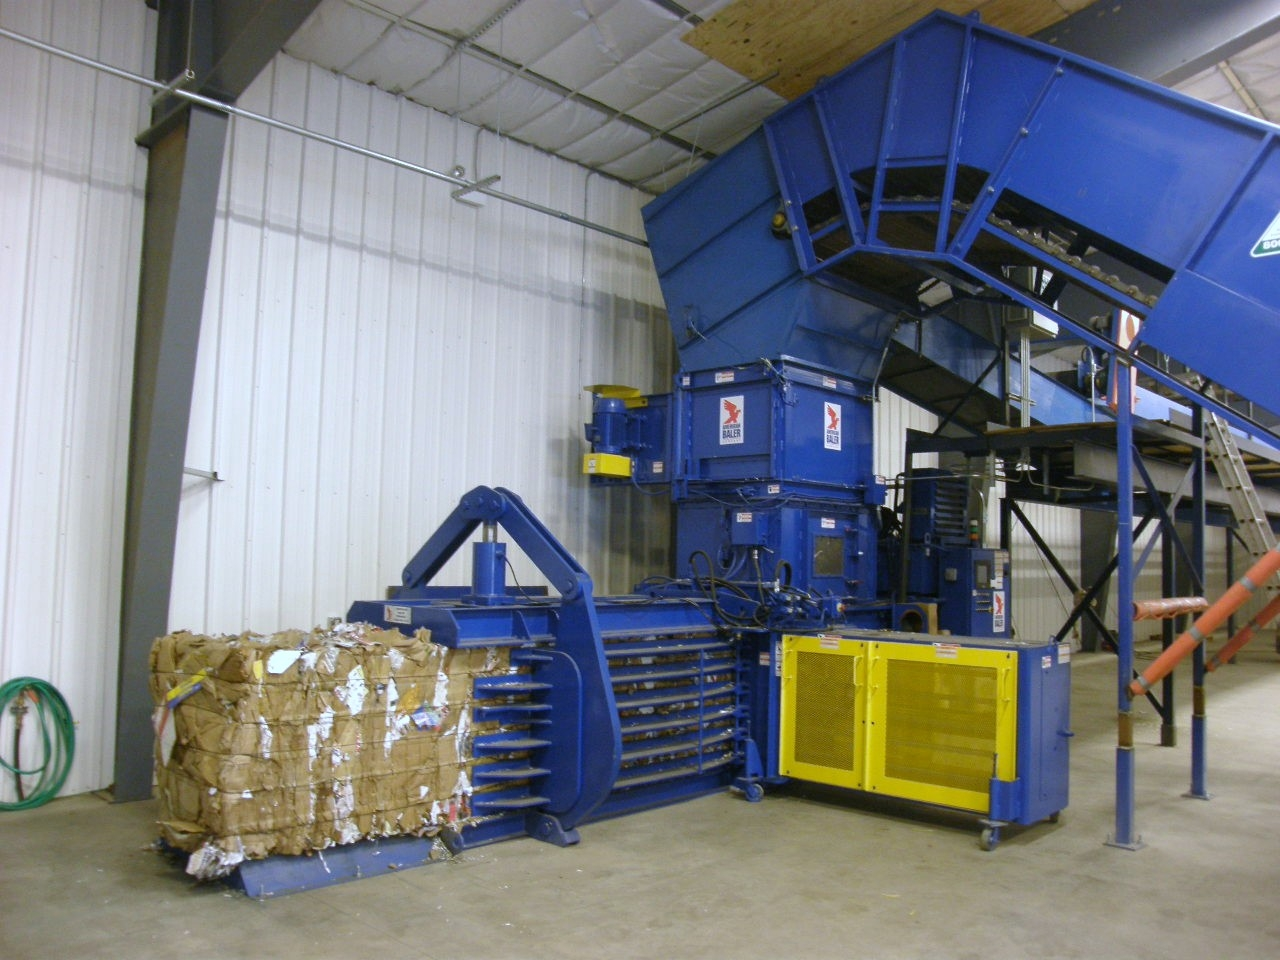 42WS Baler Shown with Baler Feed Conveyor and Optional Fluffer